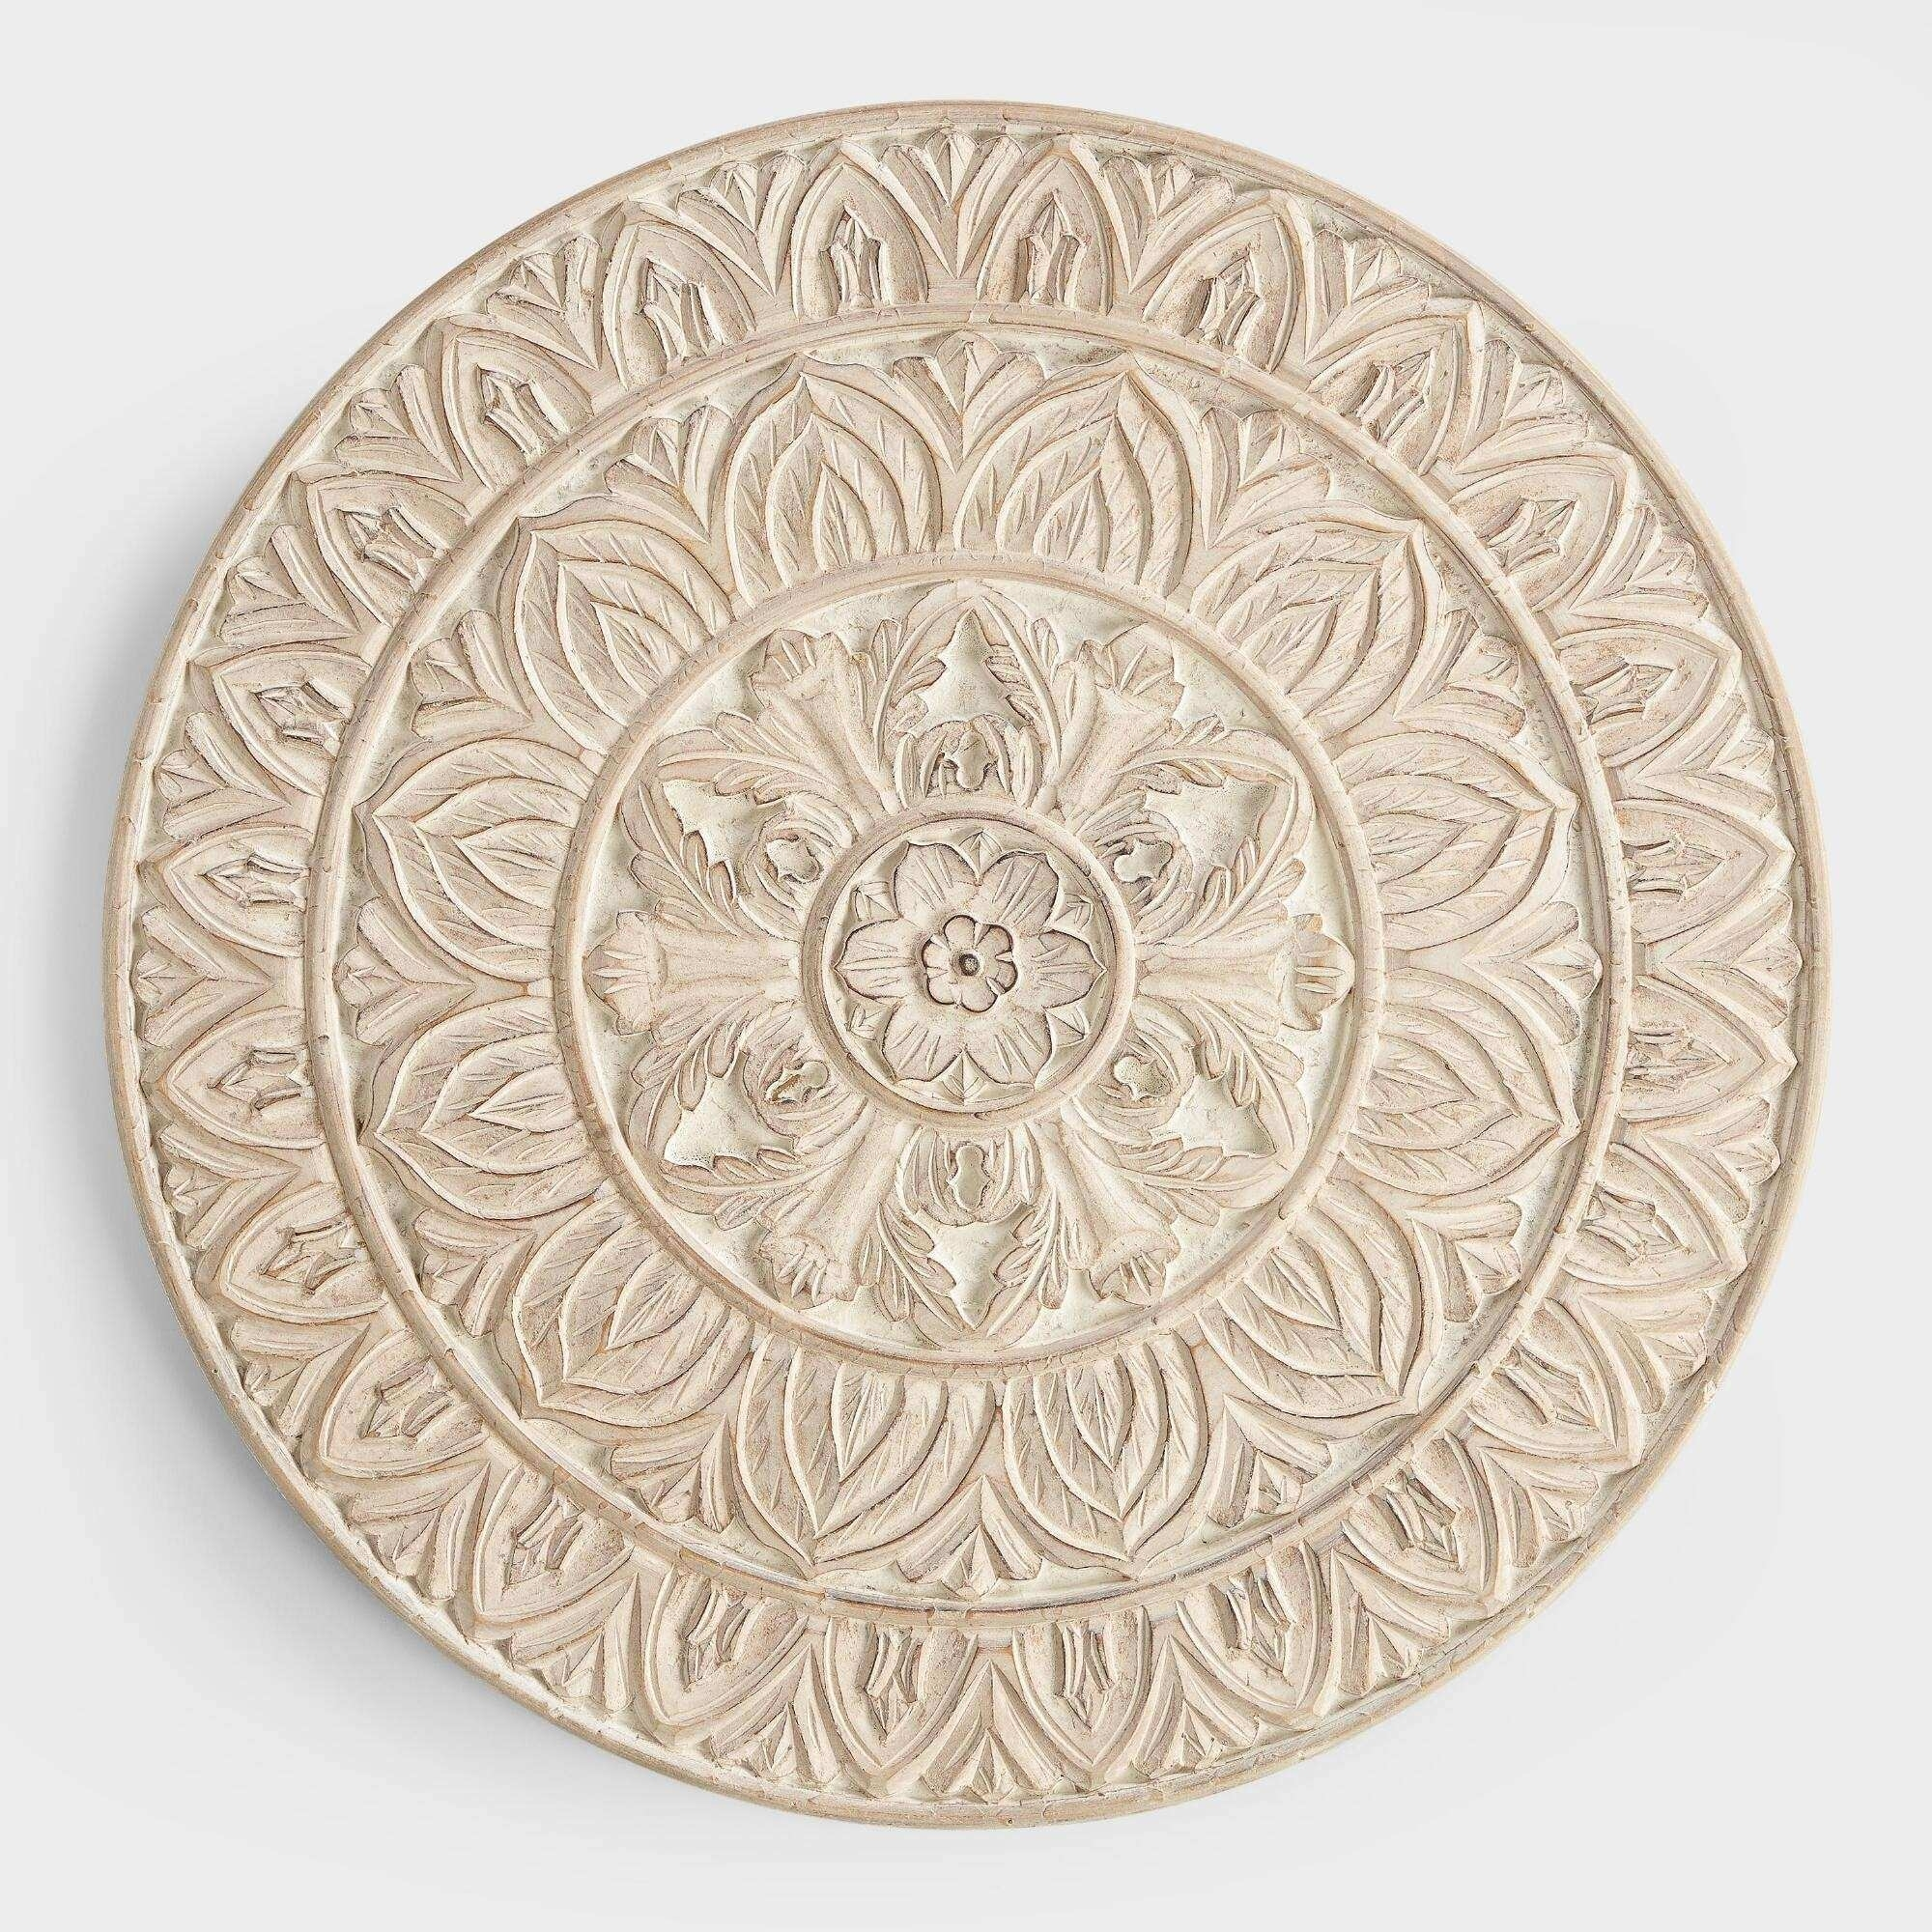 Round Wood Wall Art Best Of Whitewashed Round Wood Shaila Wall Decor Throughout Most Popular Round Wood Wall Art (View 12 of 15)